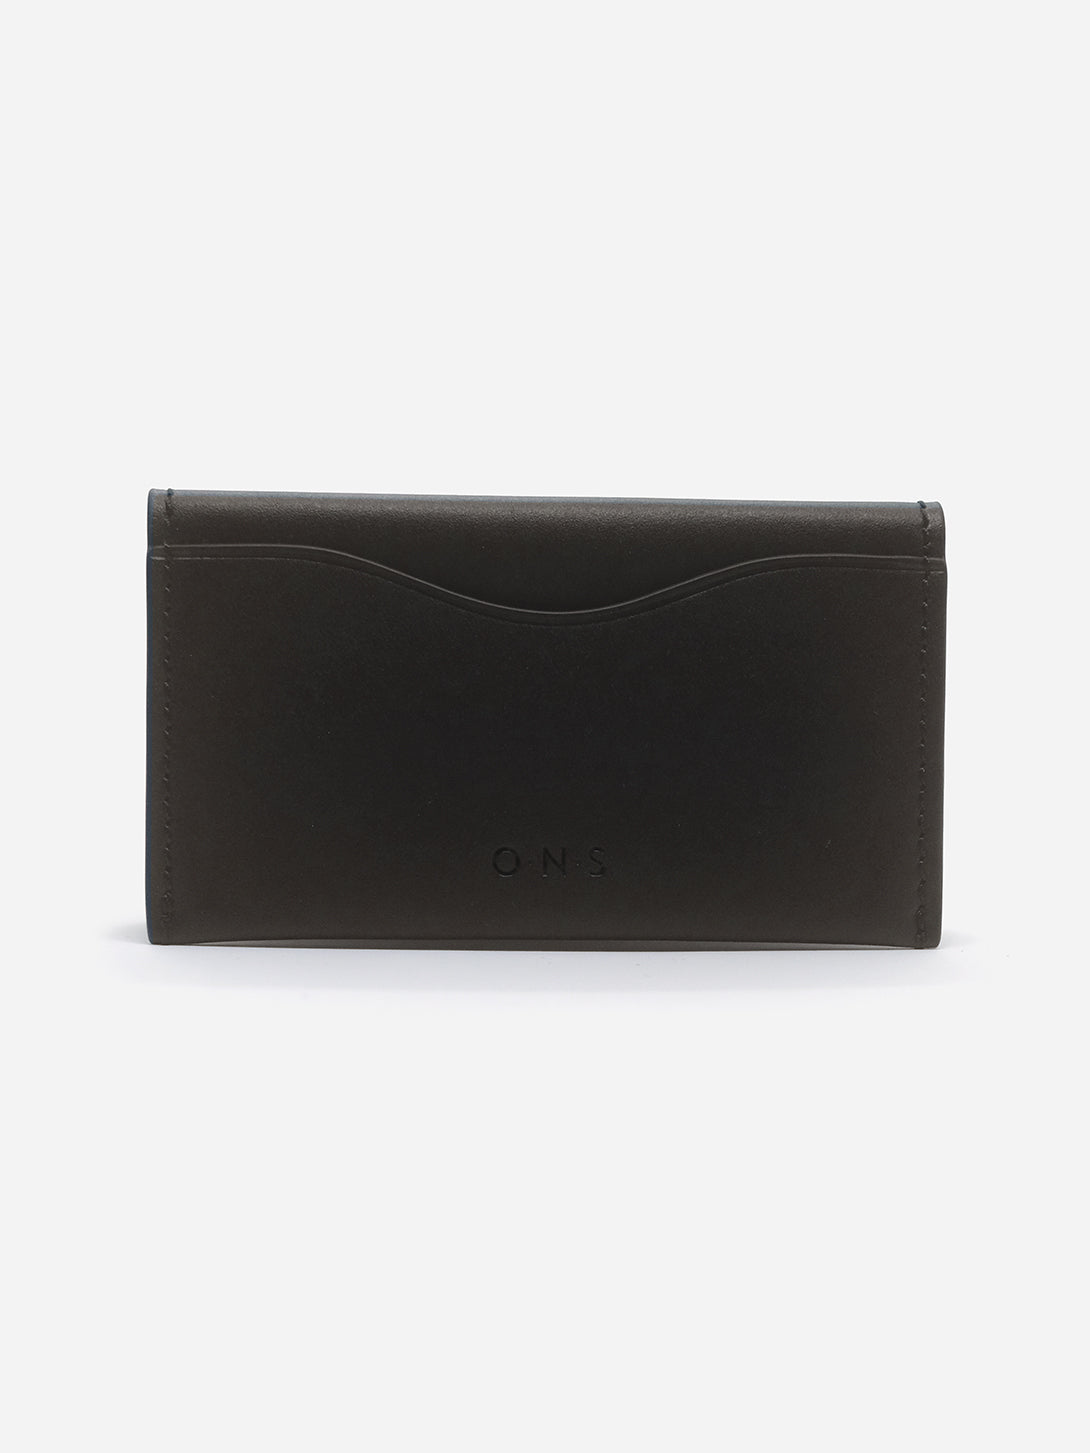 LT BROWN 4 SLOTS FOLDED CARDHOLDER ONS